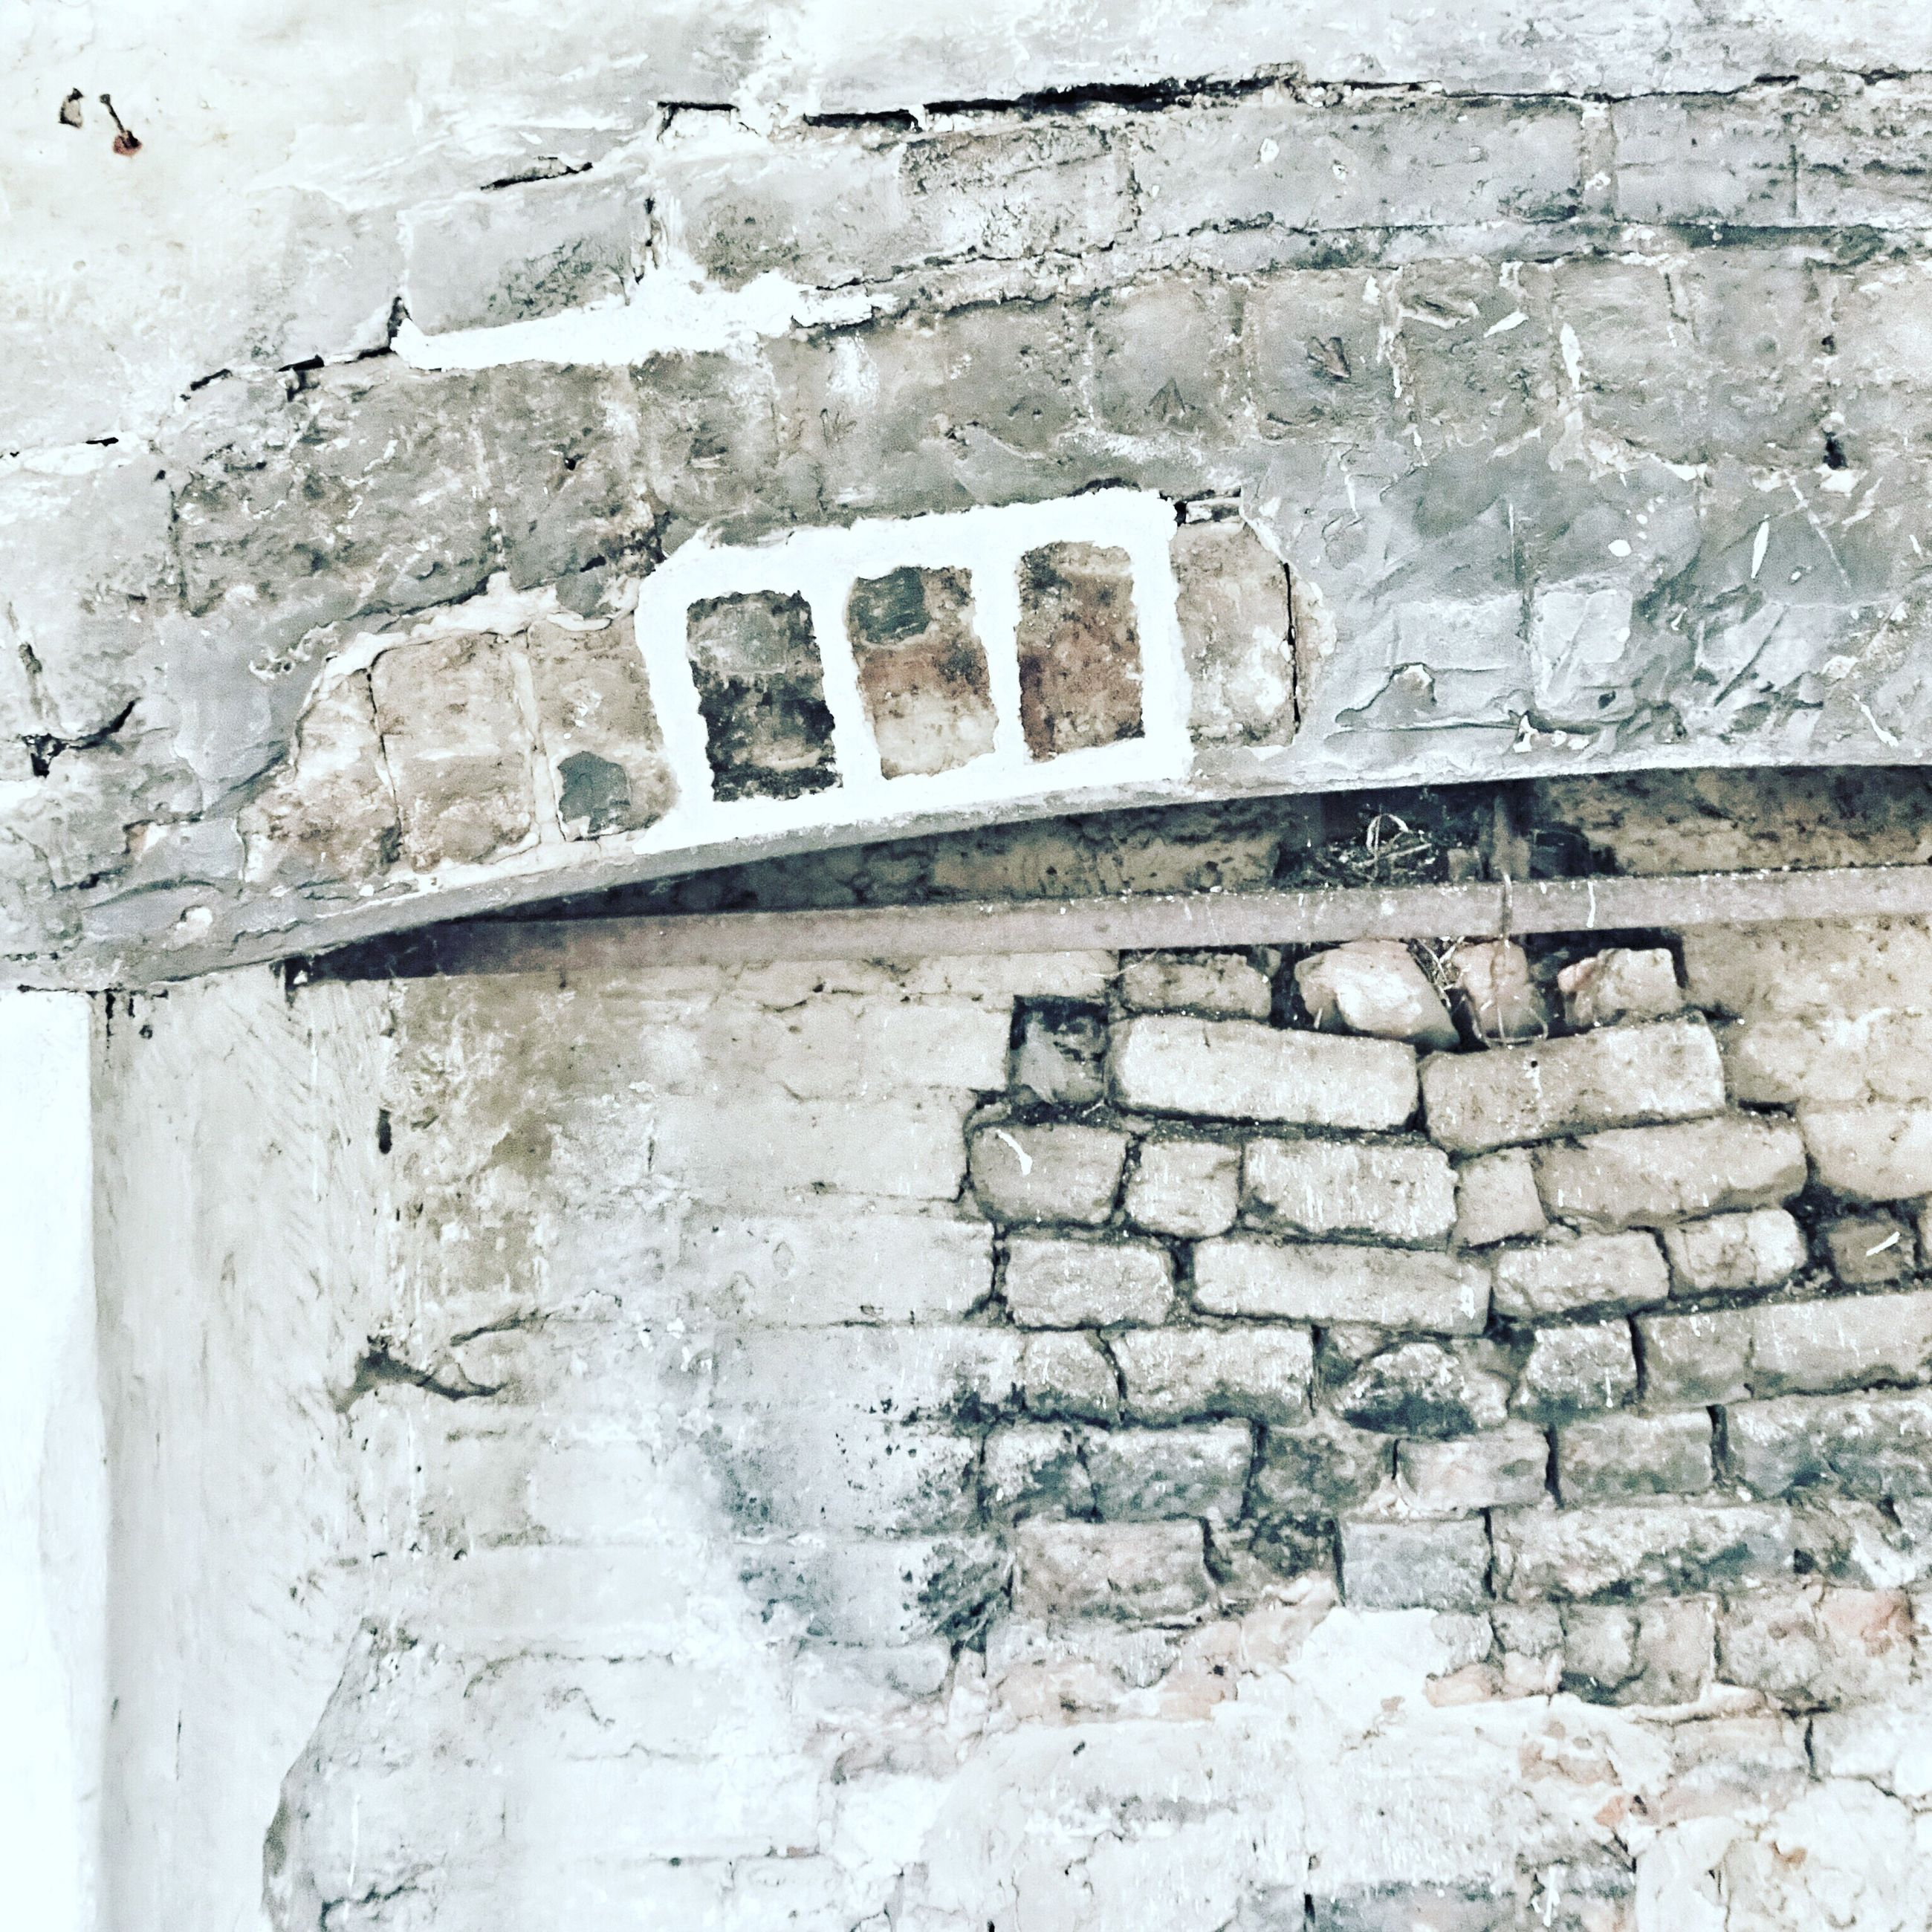 architecture, built structure, wall - building feature, building exterior, stone wall, brick wall, wall, old, weathered, history, text, day, textured, outdoors, stone material, the past, brick, western script, ancient, no people